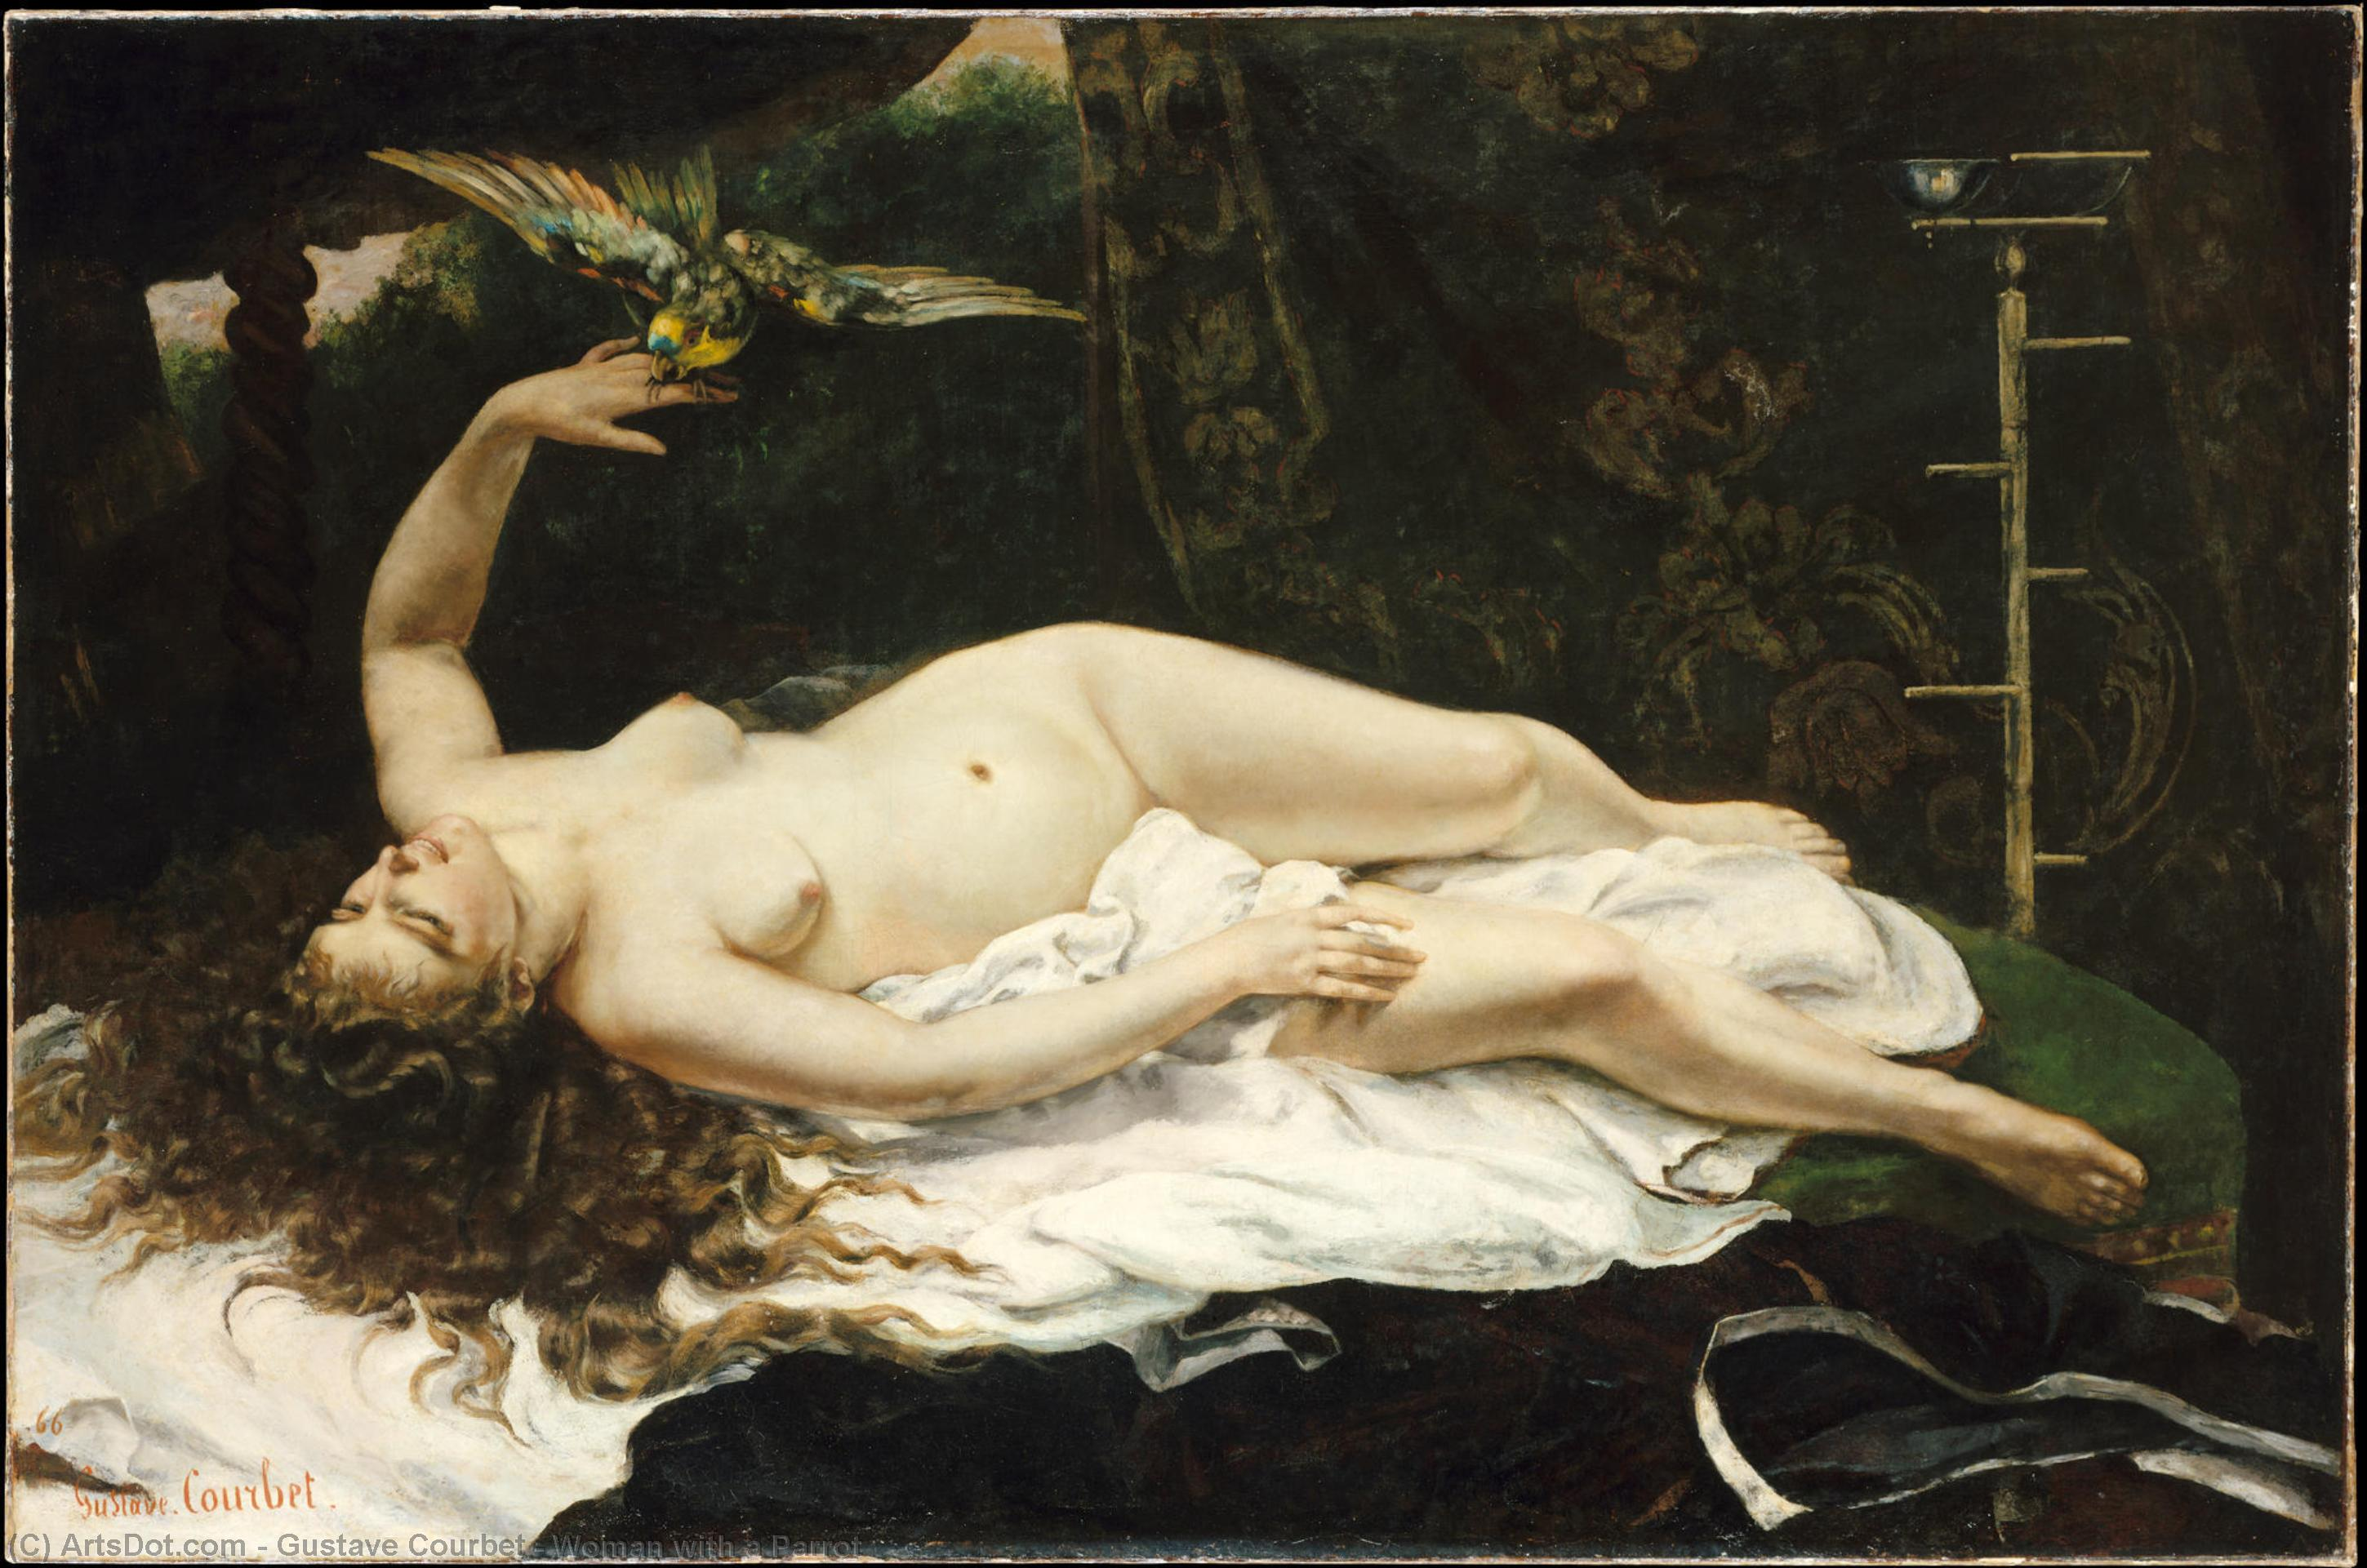 Woman with a Parrot - Gustave Courbet